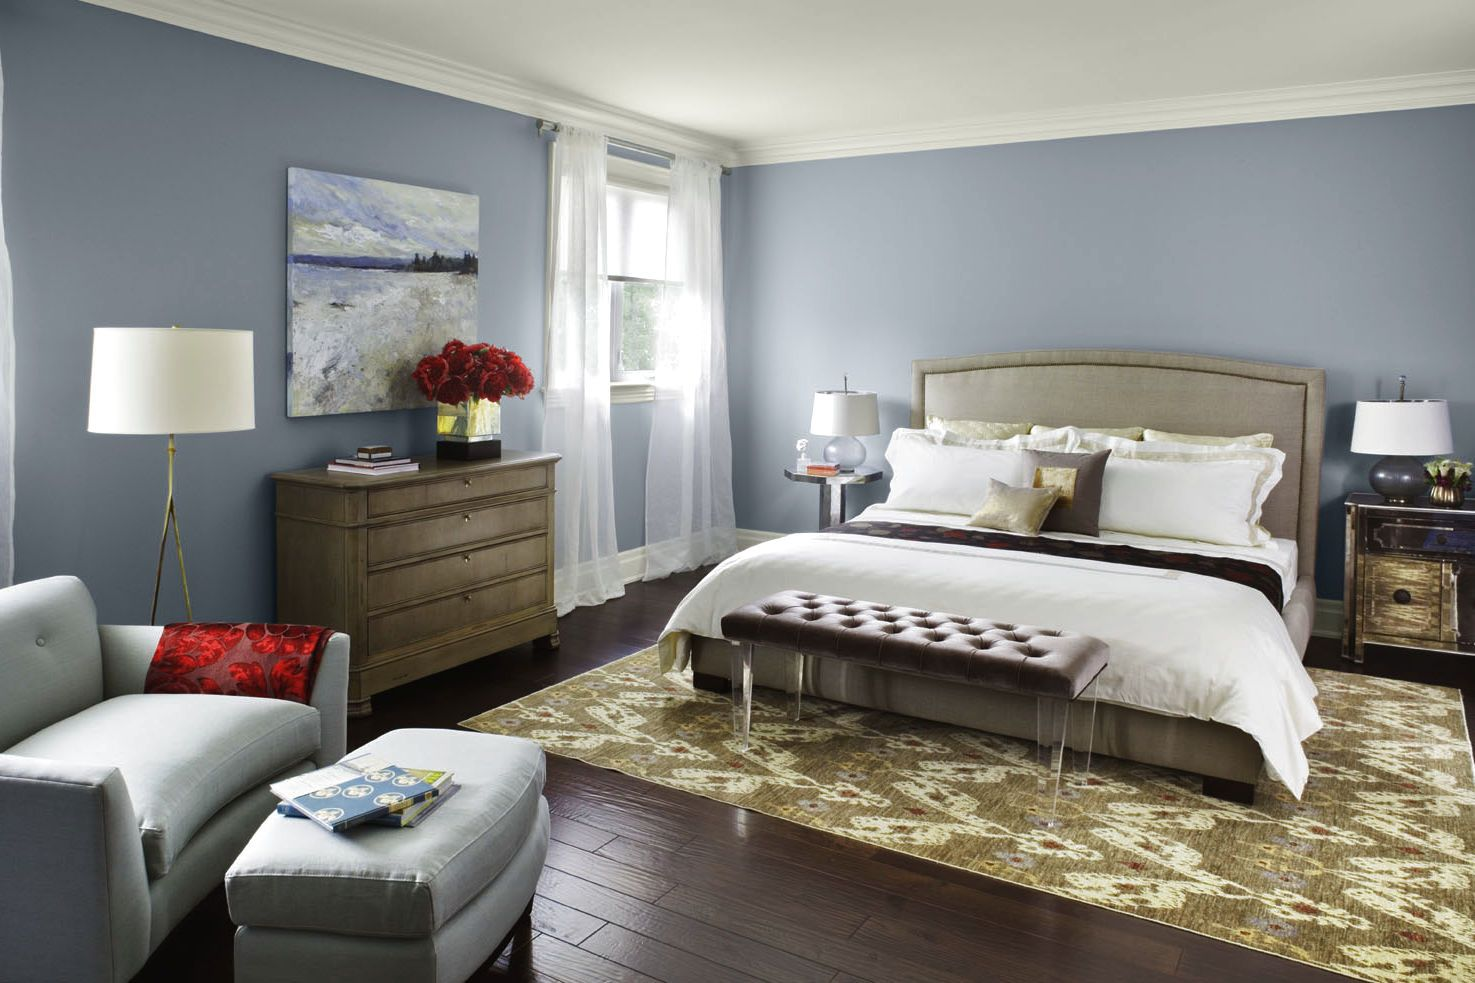 Grey Bedroom Paint Colors For Traditional Room With Wide Bed And Monochrome Relaxing  Bedrooms